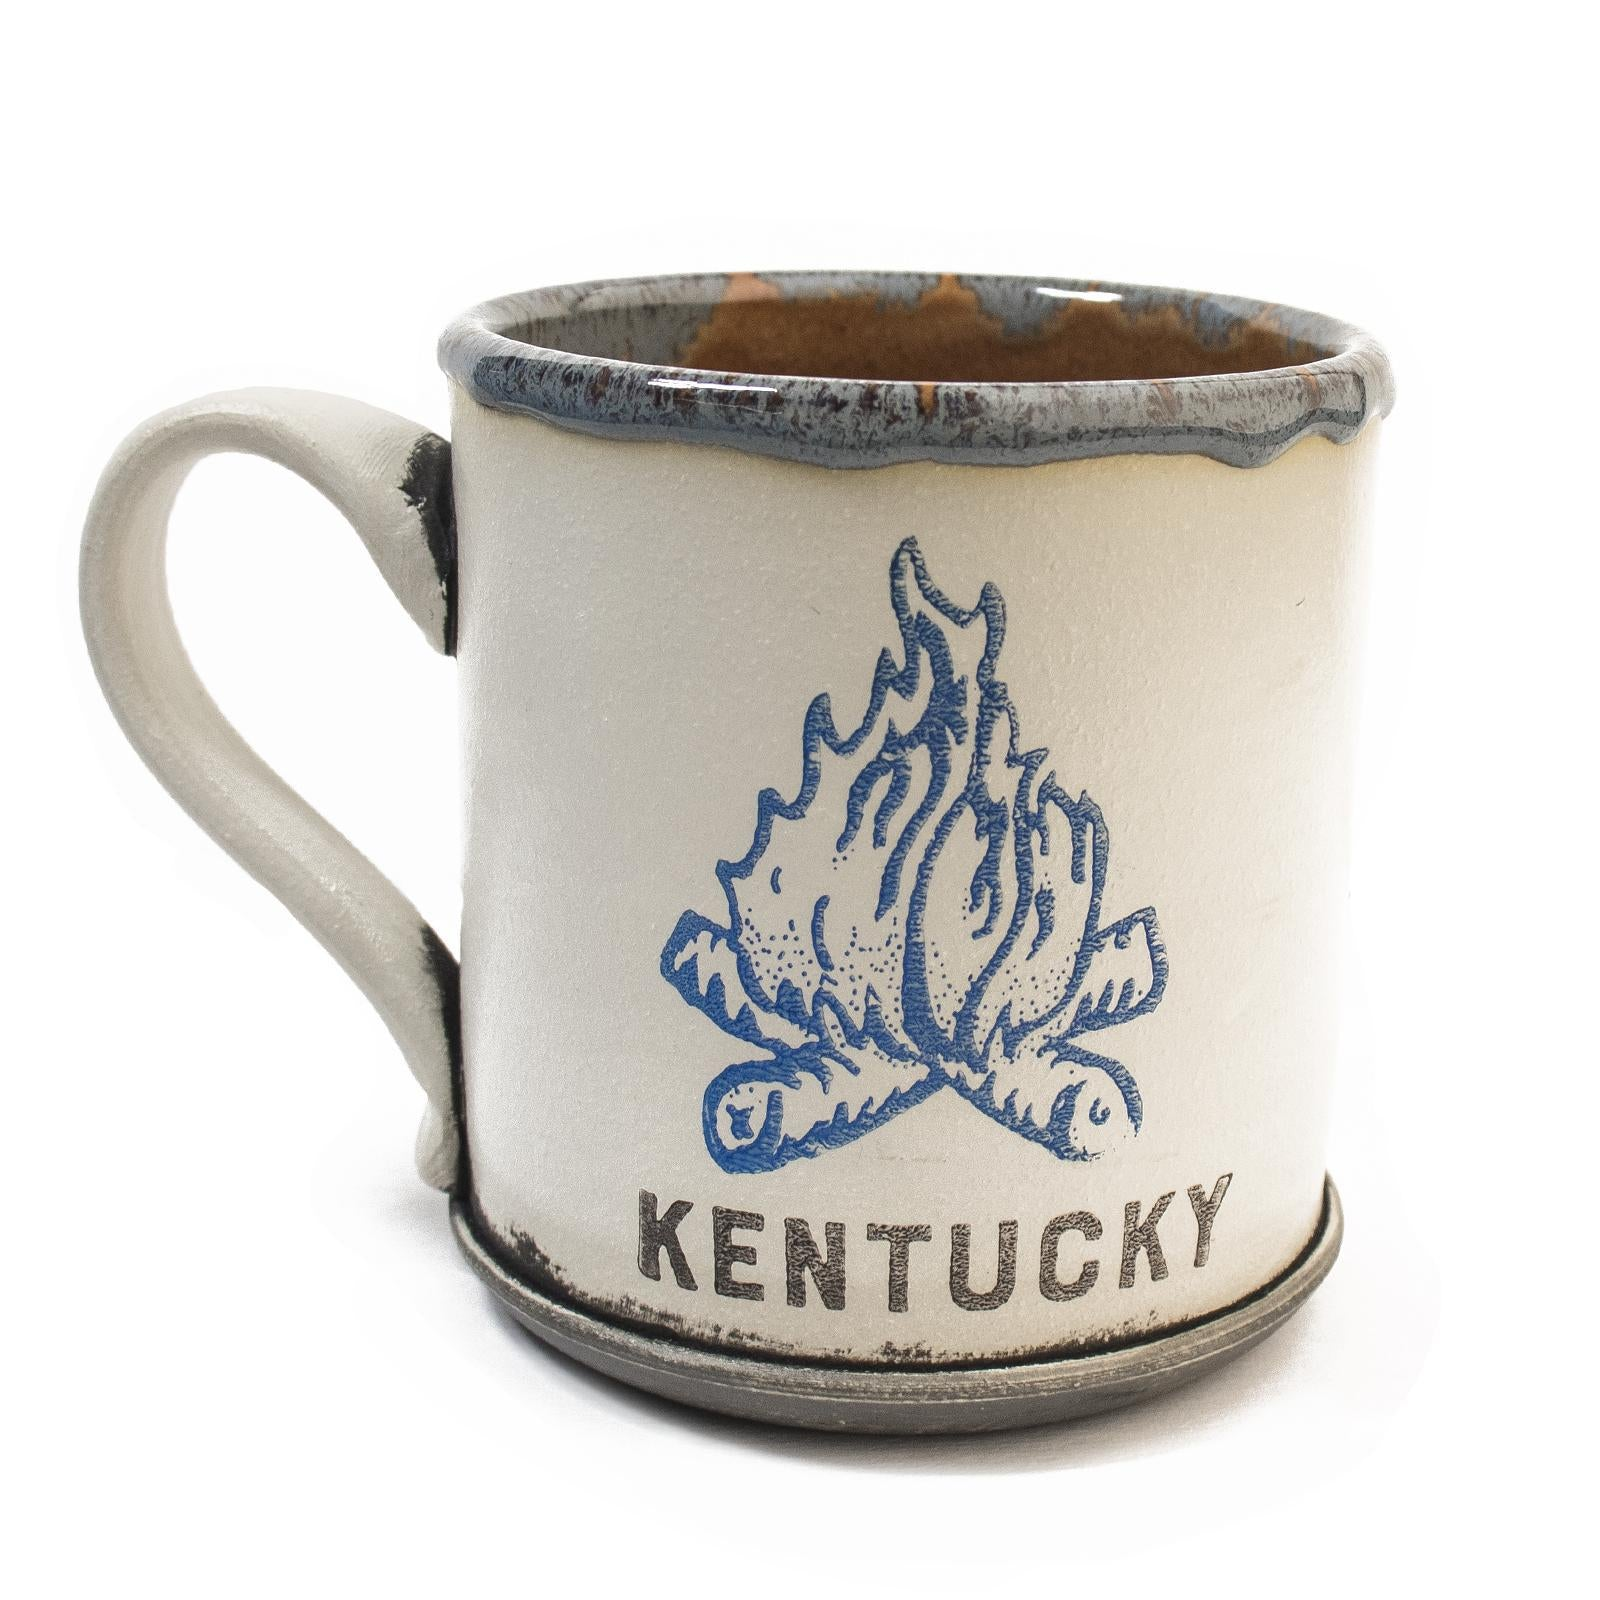 Kentucky Campfire Mugs by David Kenton Kring-Glass-KY for KY Store